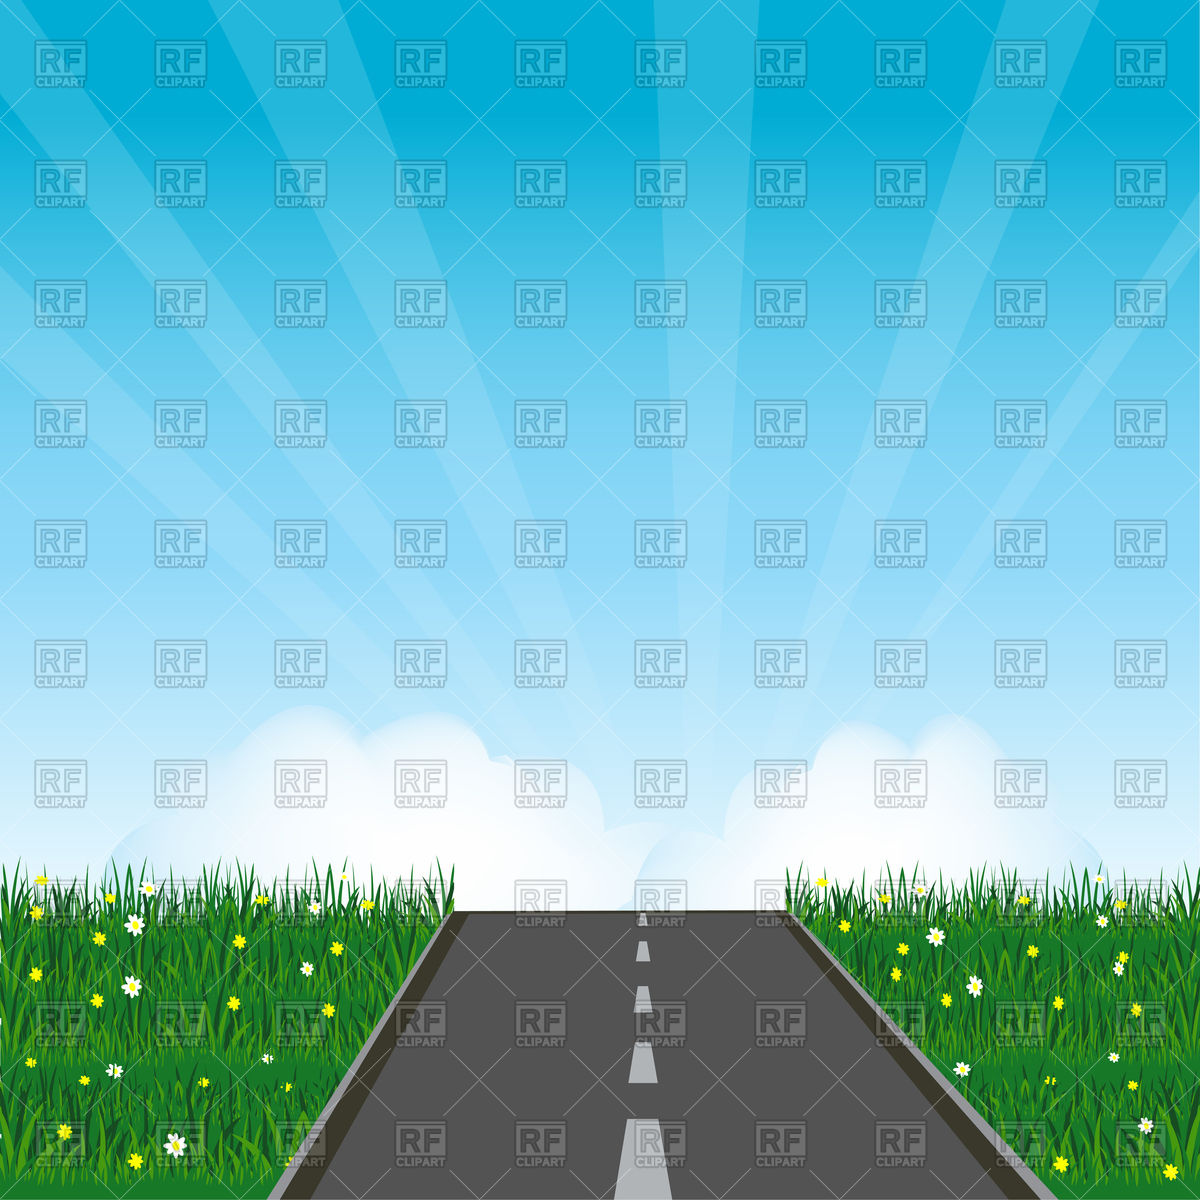 Asphalt road in green field with flower Vector Image #91363.